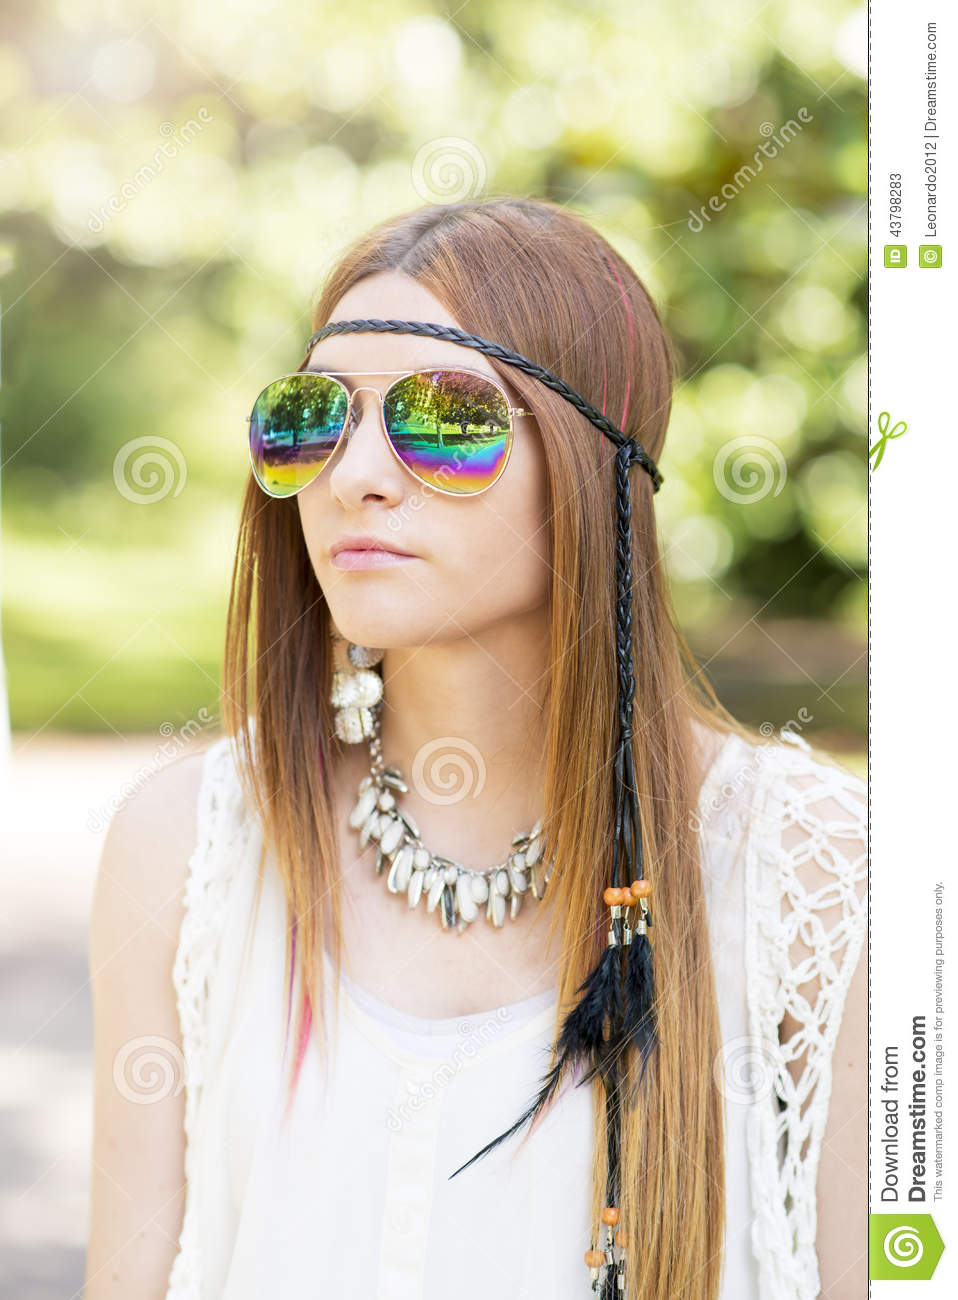 women dating younger men trend sunglasses I had told her a funny little story about some goofy sunglasses i had and she said she was  a few women on dating  western world and that the trend.